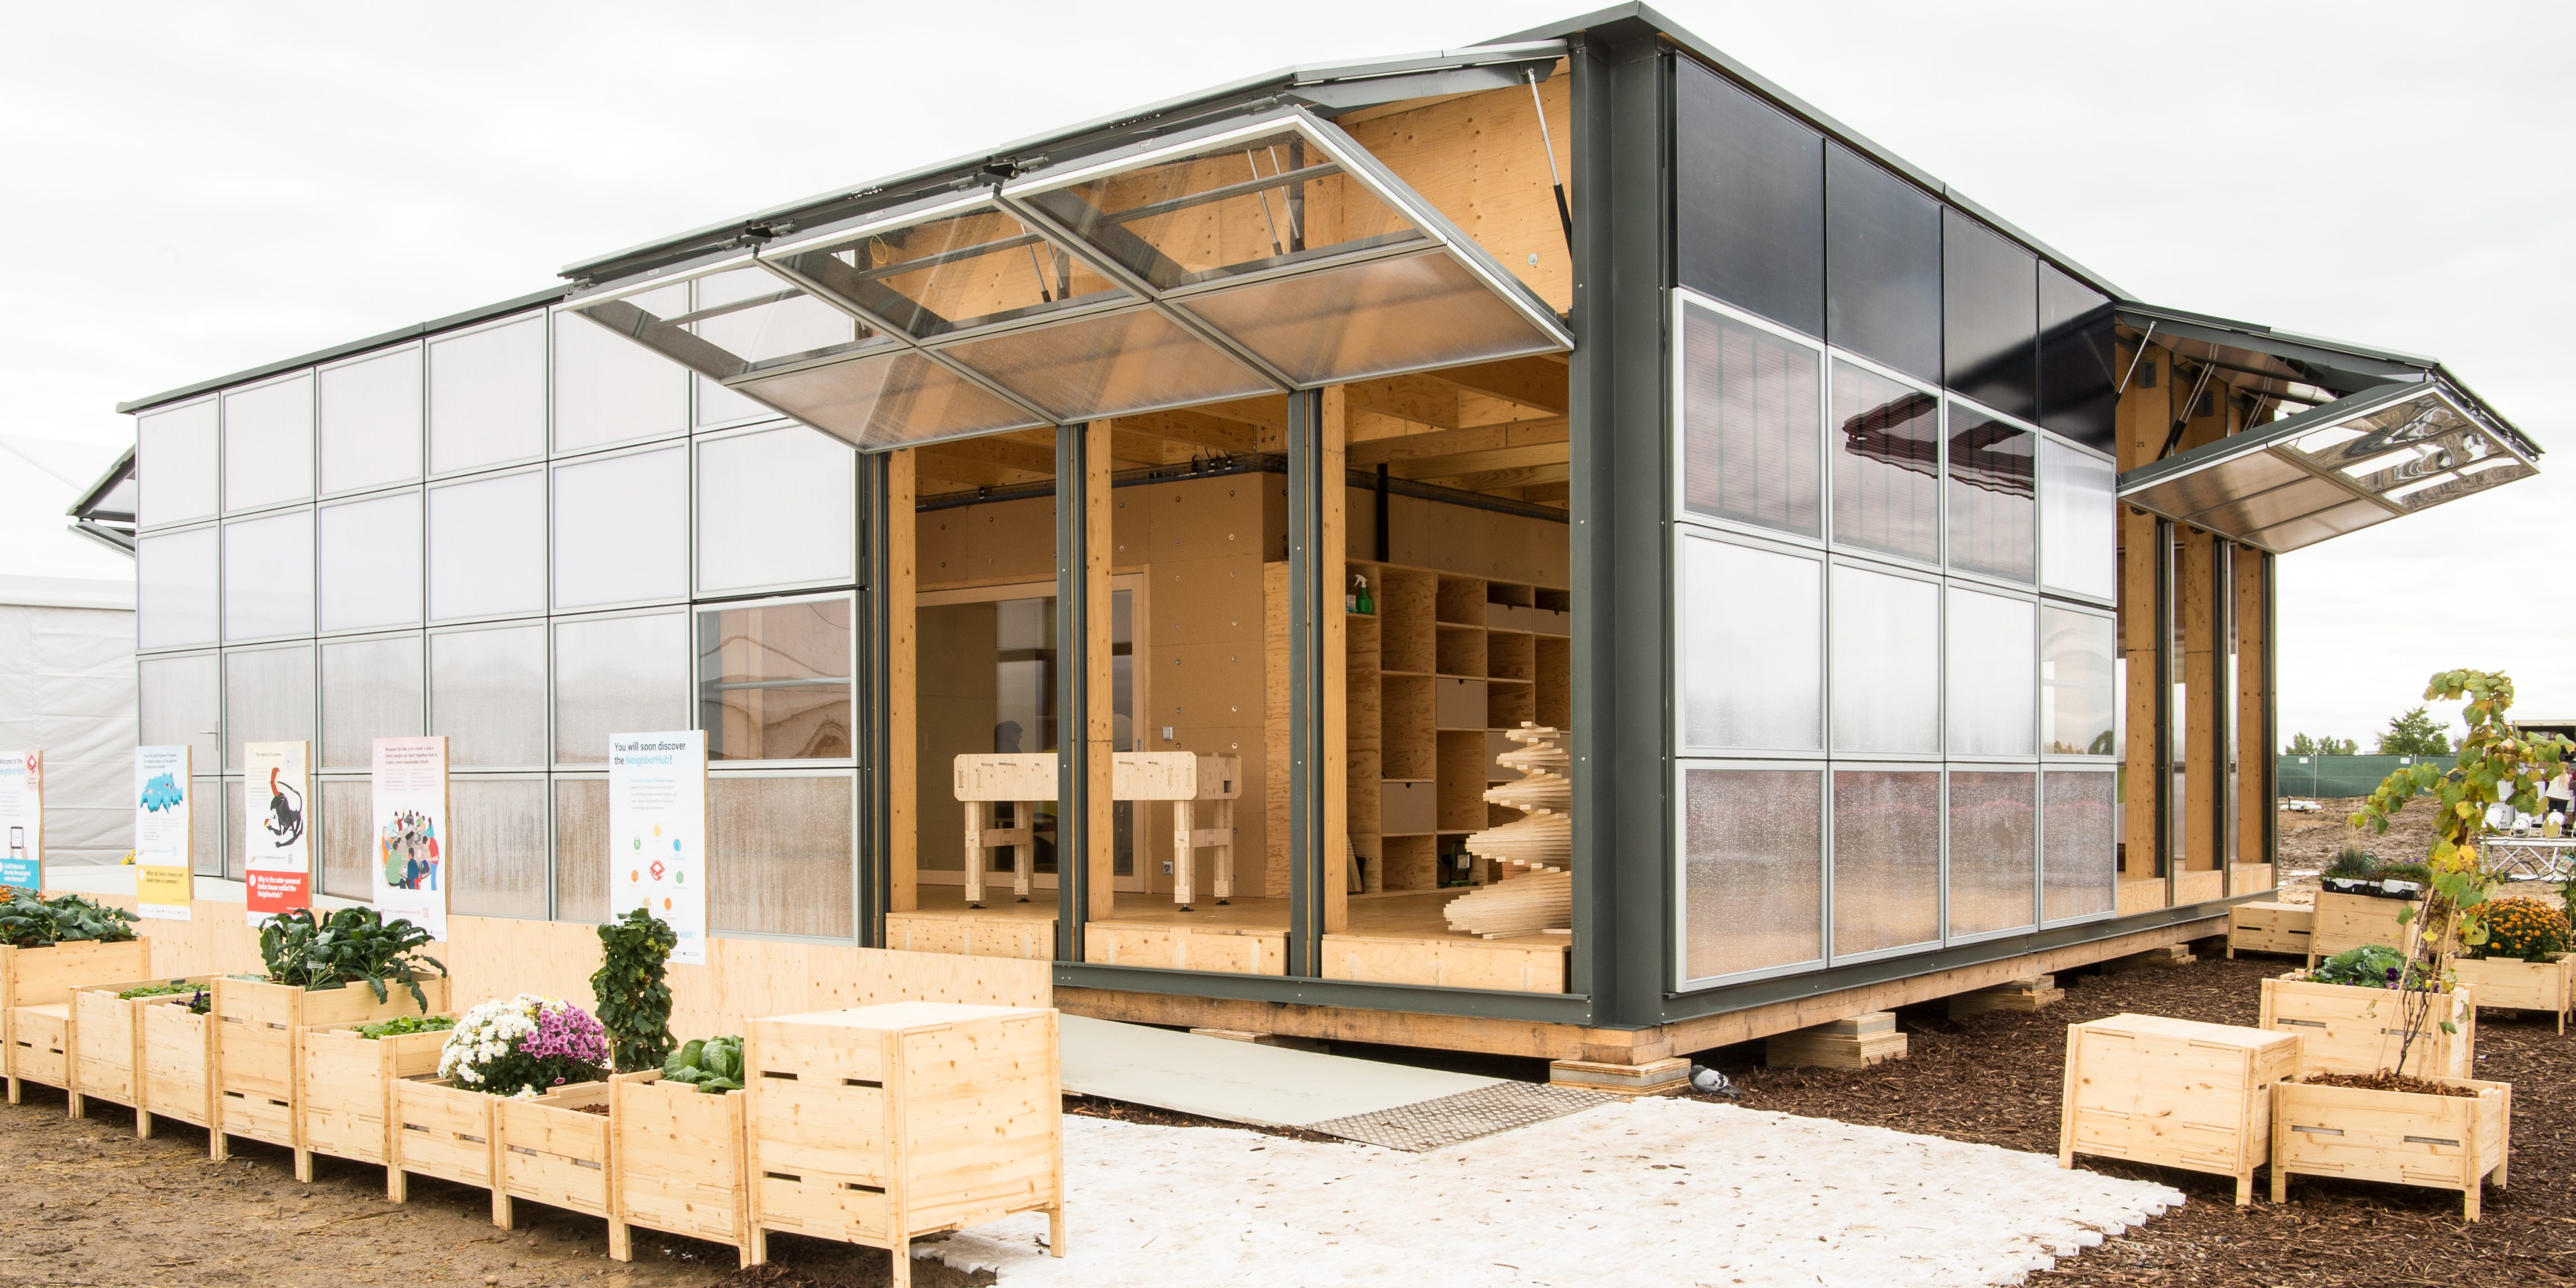 Winning Swiss solar powered 'Solar Decathlon' home wants to feed, clean and protect you